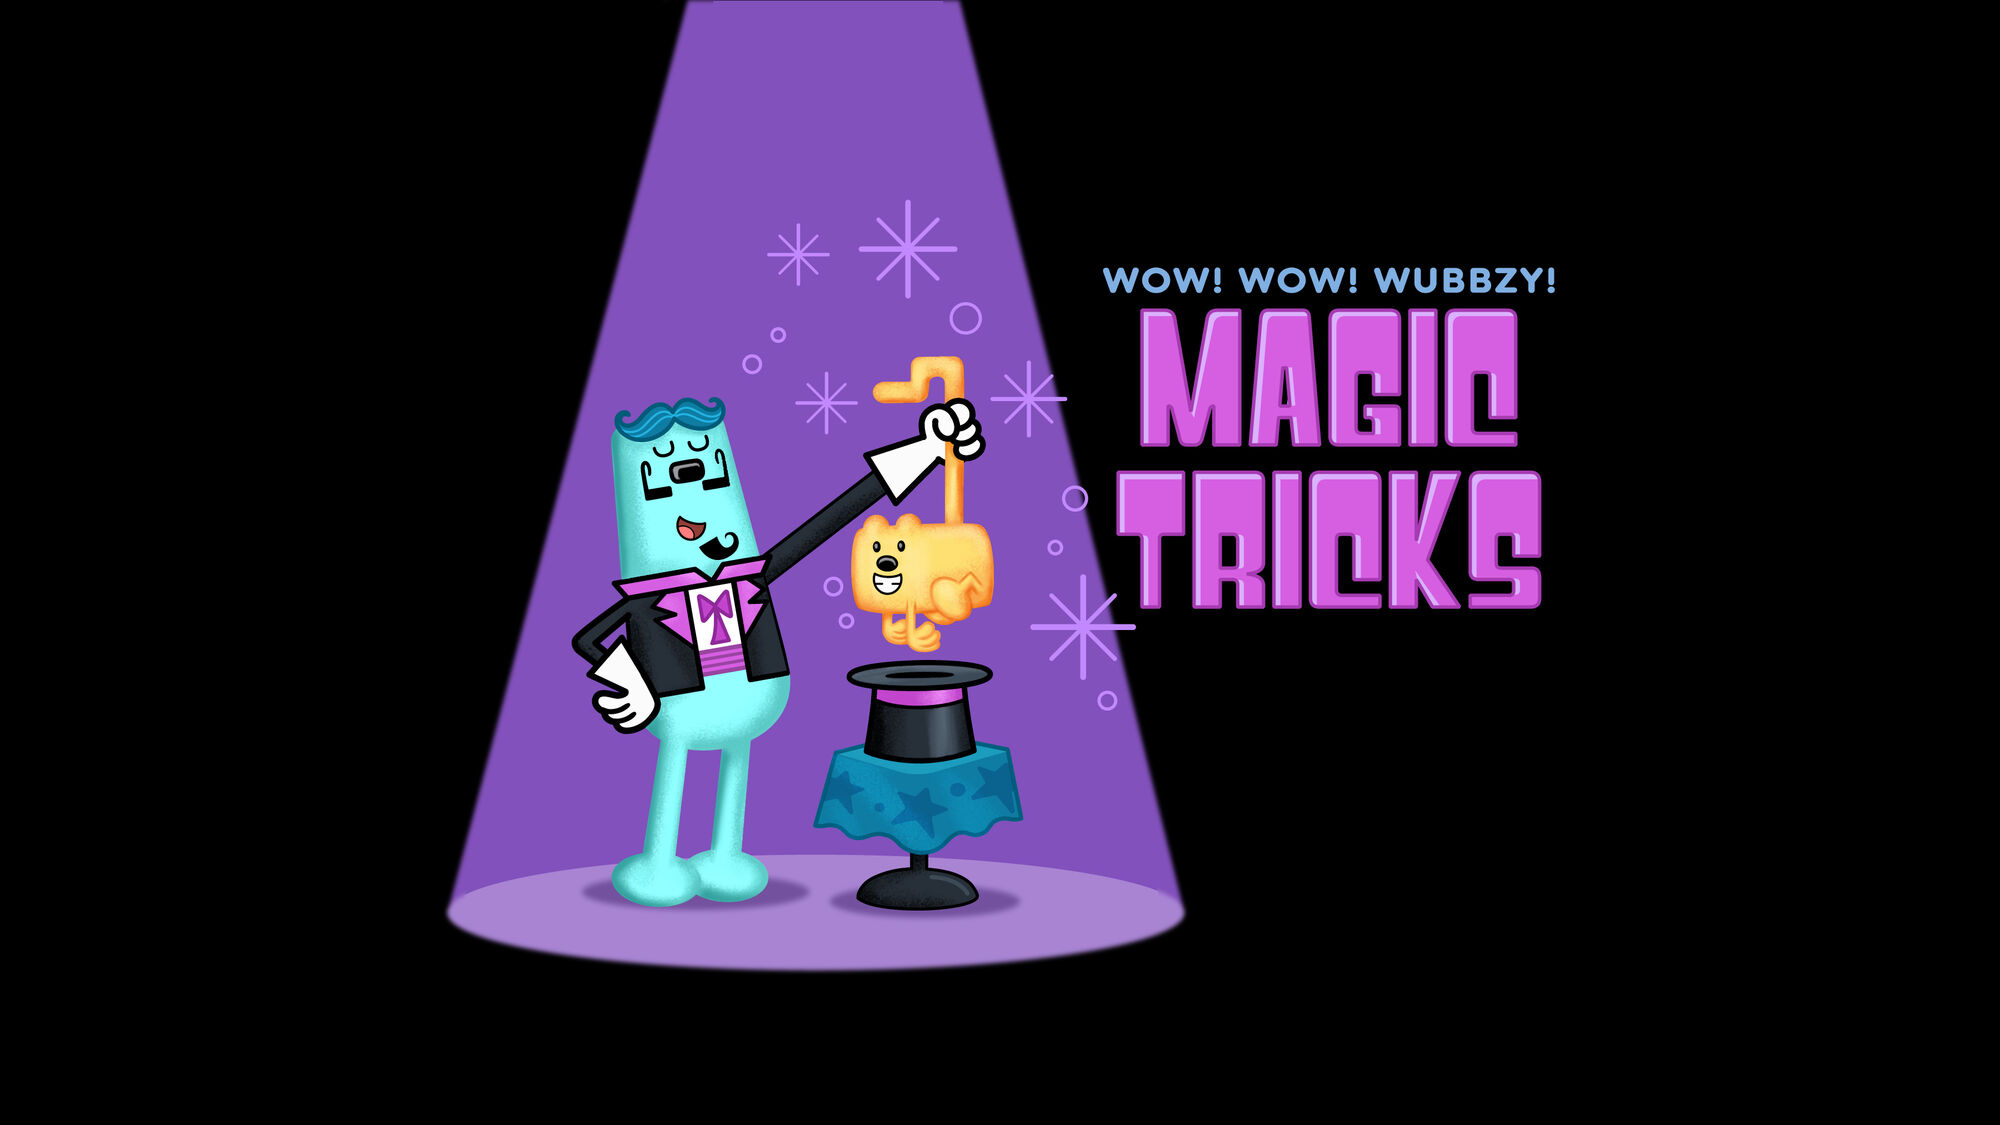 Magic Tricks | Wubbzypedia | FANDOM powered by Wikia